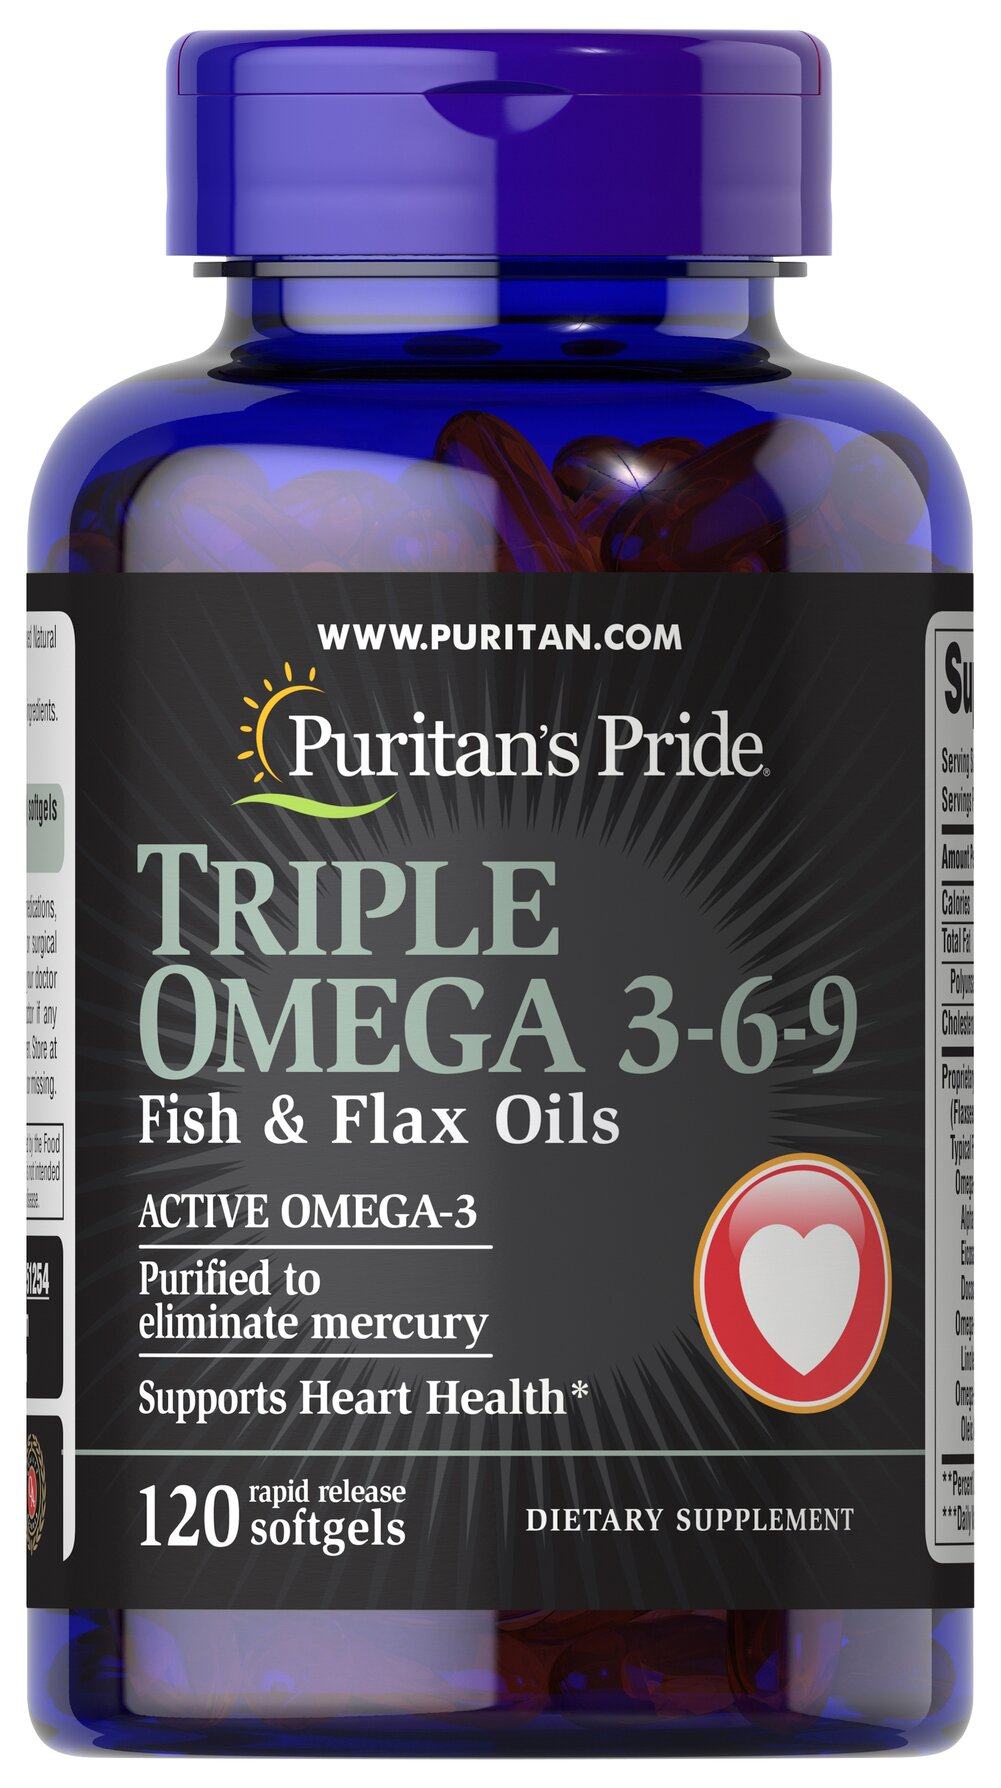 Triple Omega 3-6-9 Fish & Flax Oils  120 Softgels  $18.39